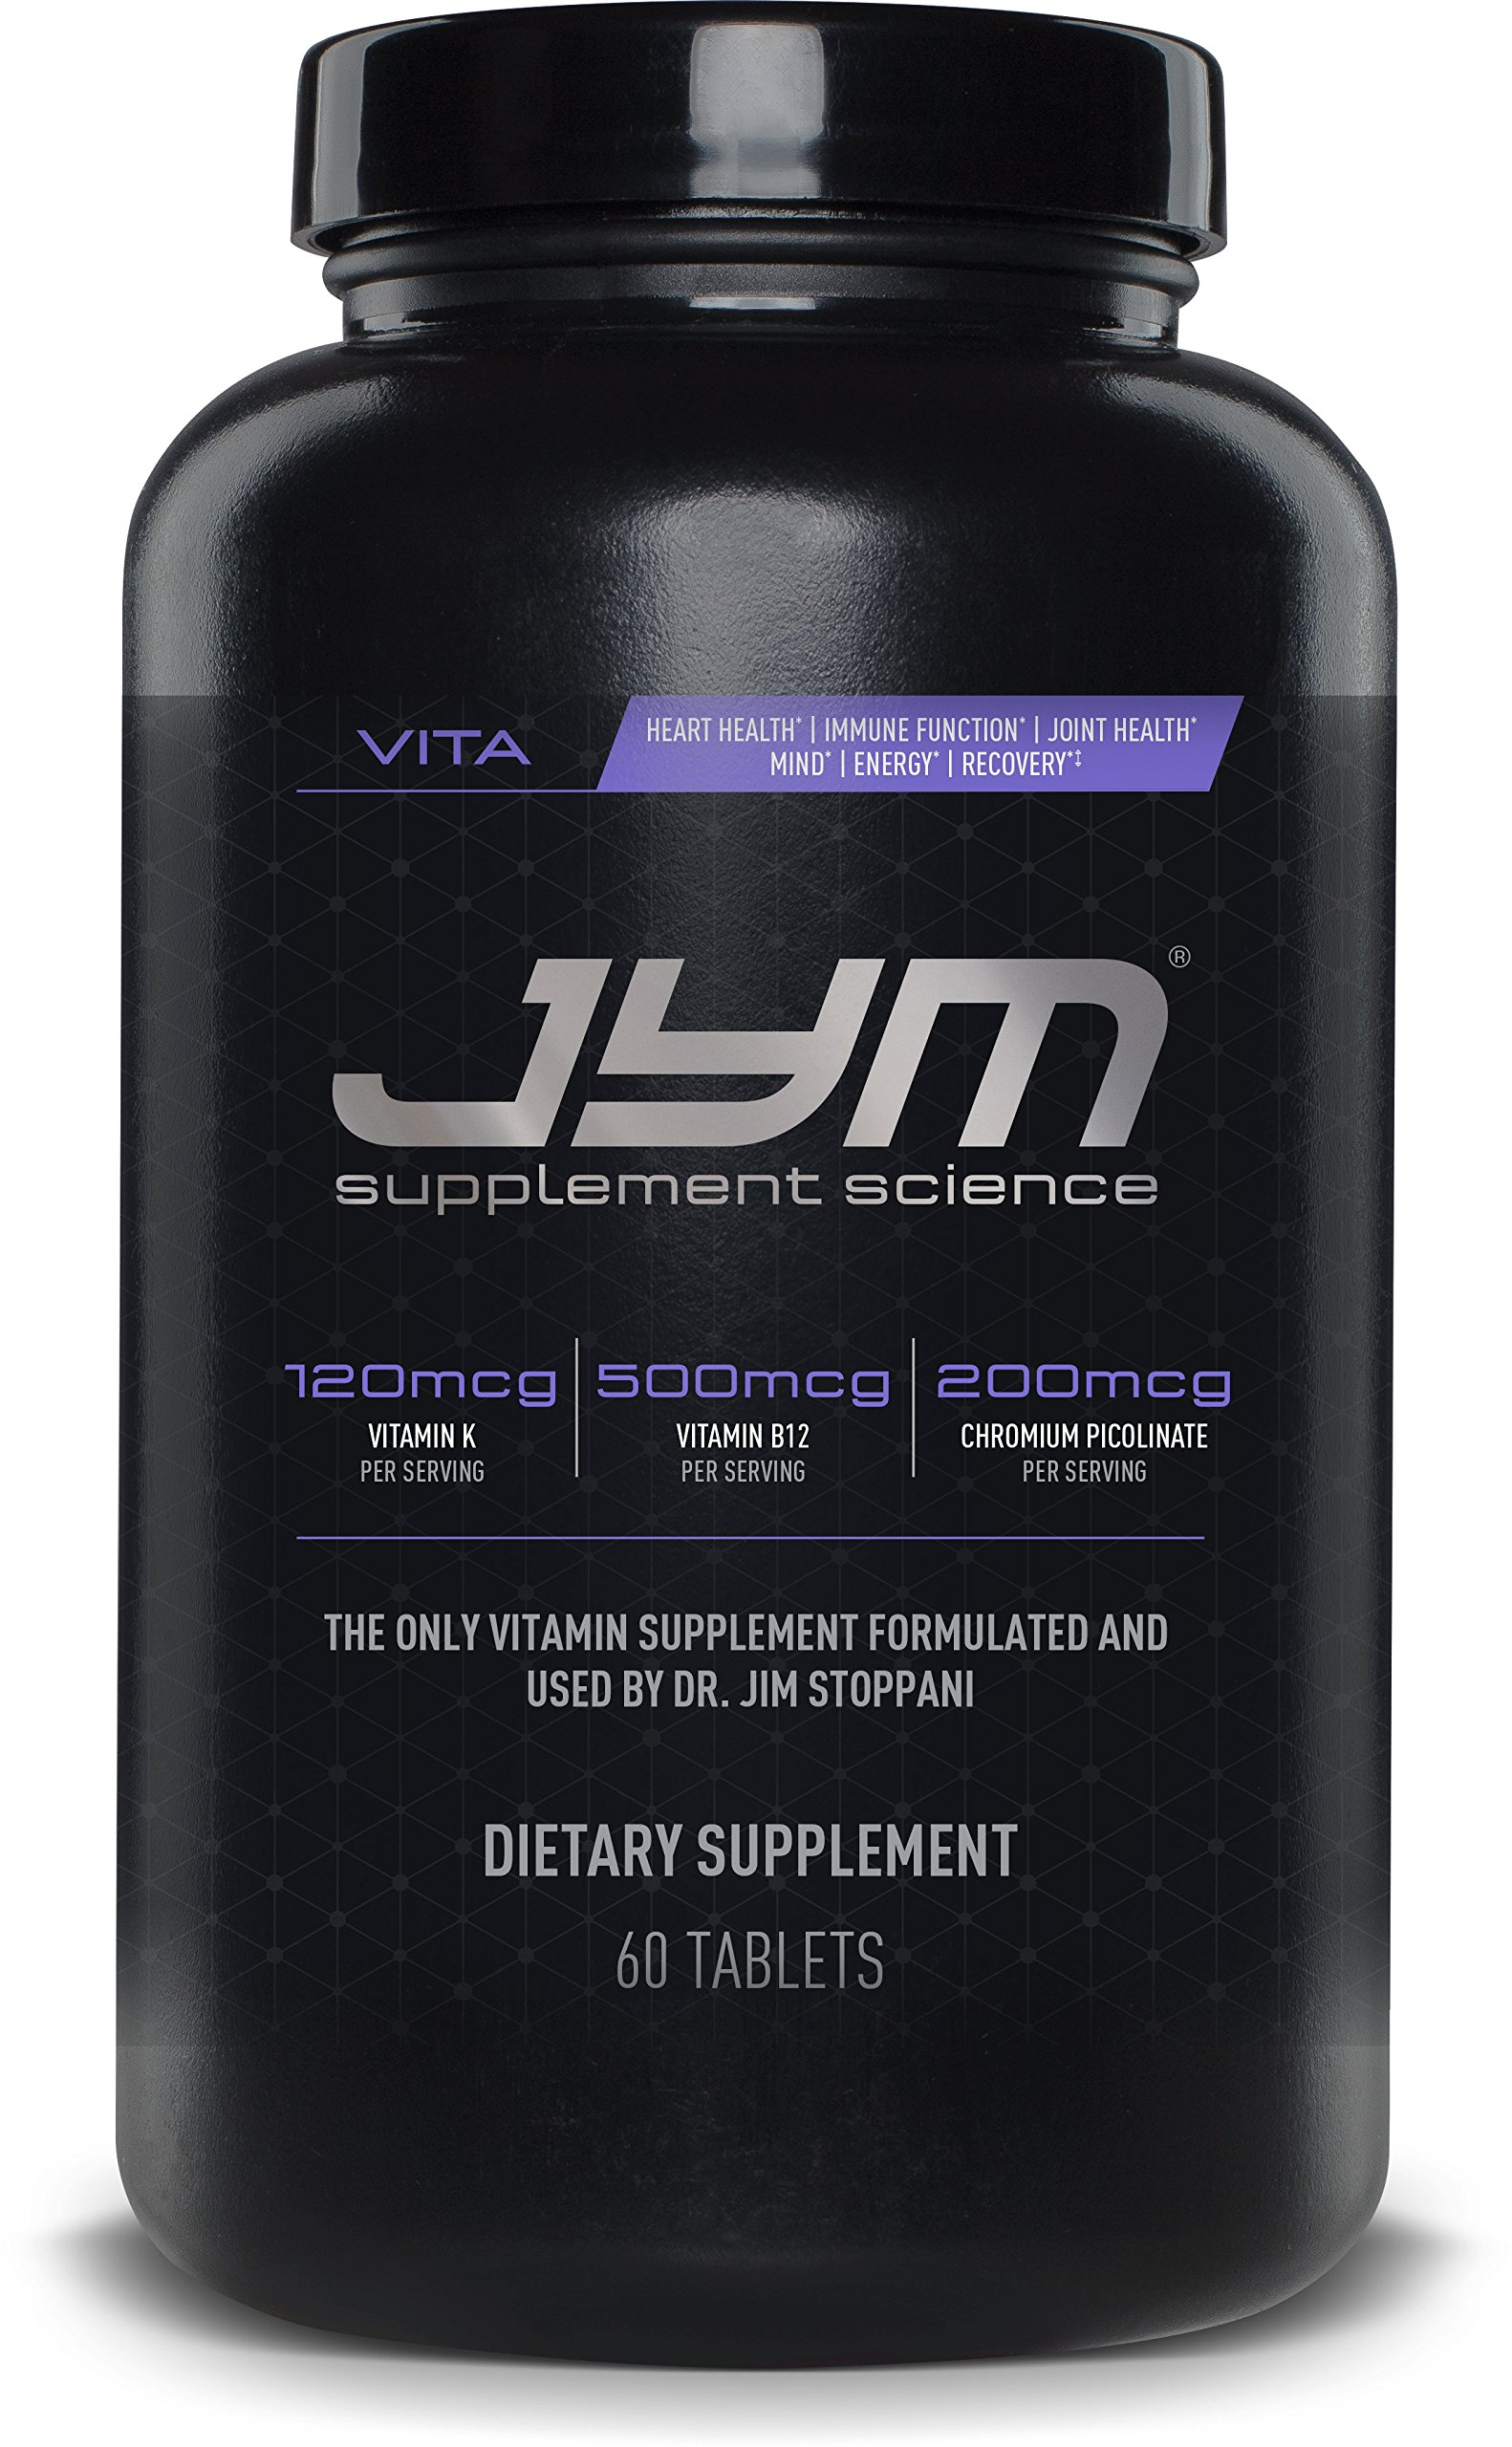 JYM Sports Multivitamin Supplement Tablets - Vitamins A, C, E, and K | JYM Supplemental Science | 60 Tablets by JYM Supplement Science